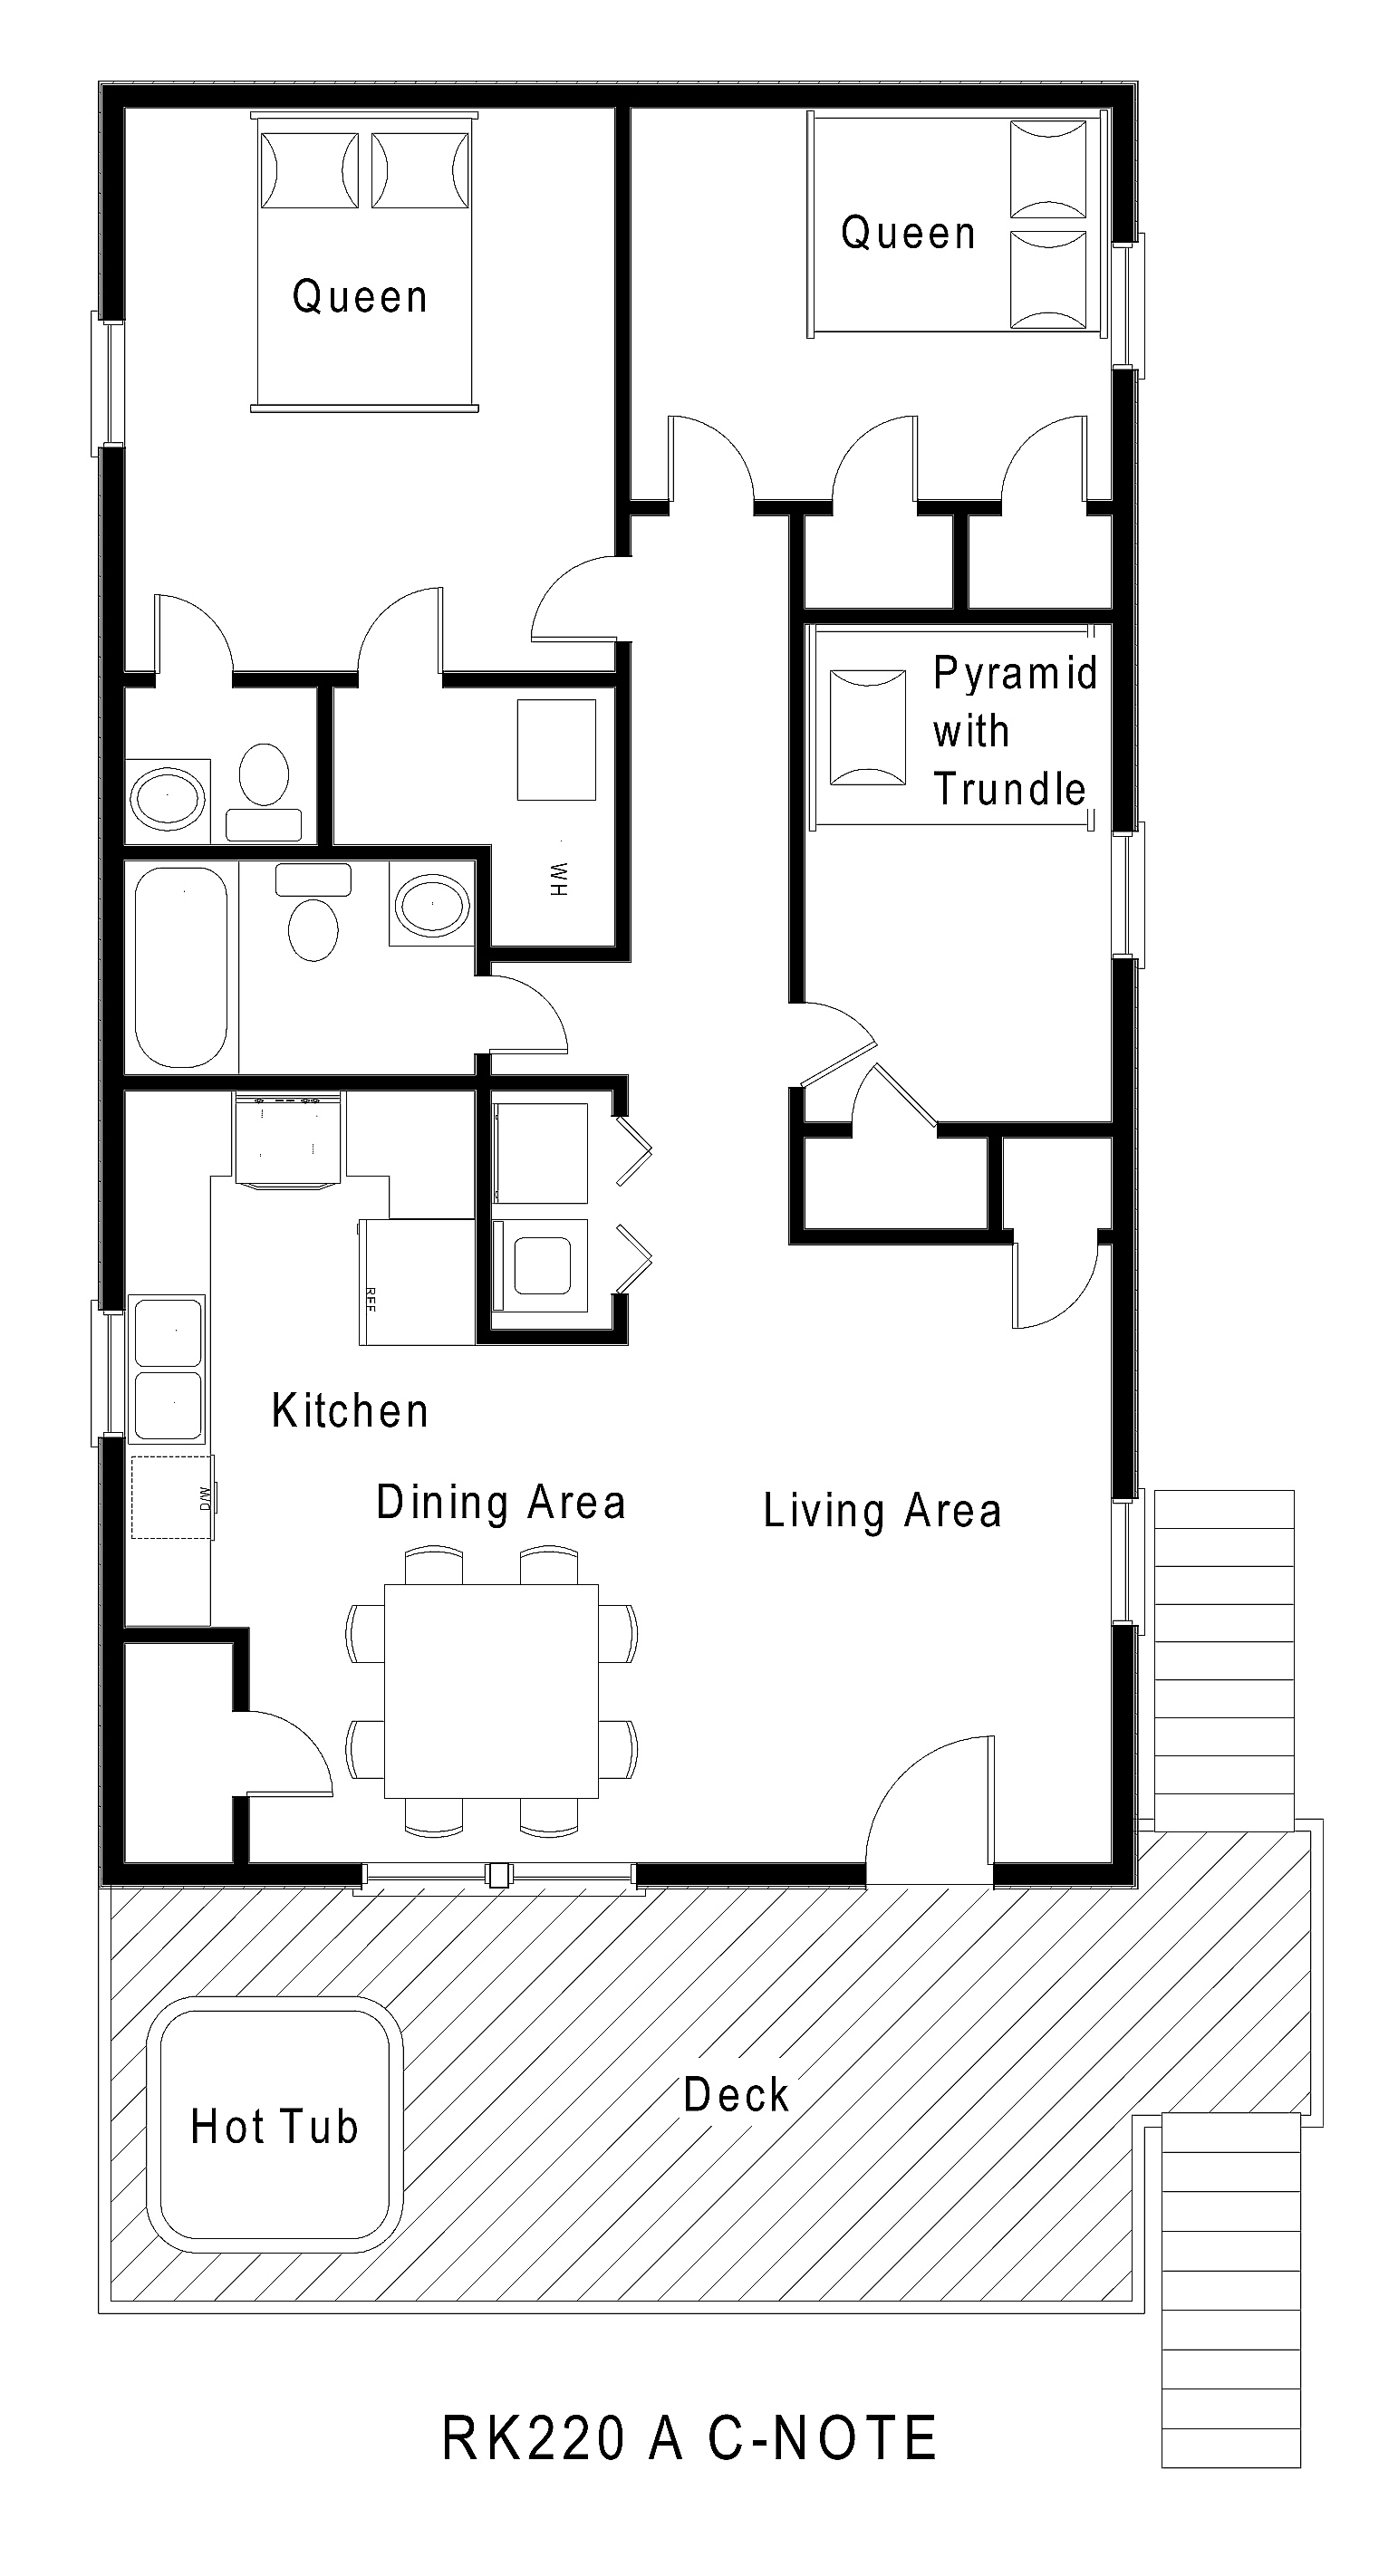 RK220 A C-Note Floorplan Level 1